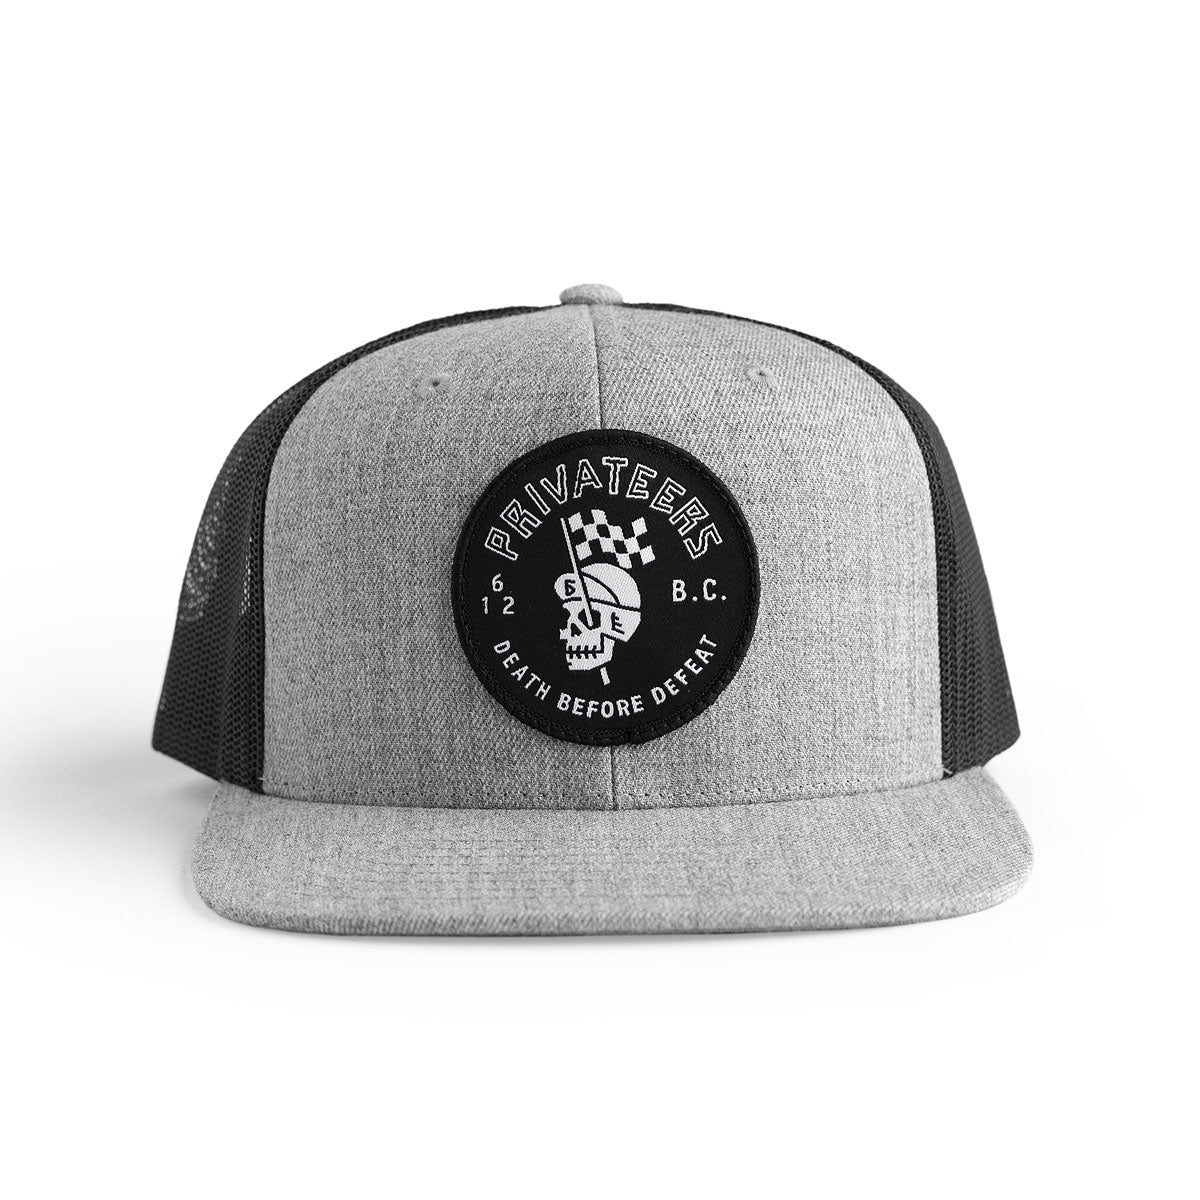 Privateers Hat (GRAY)